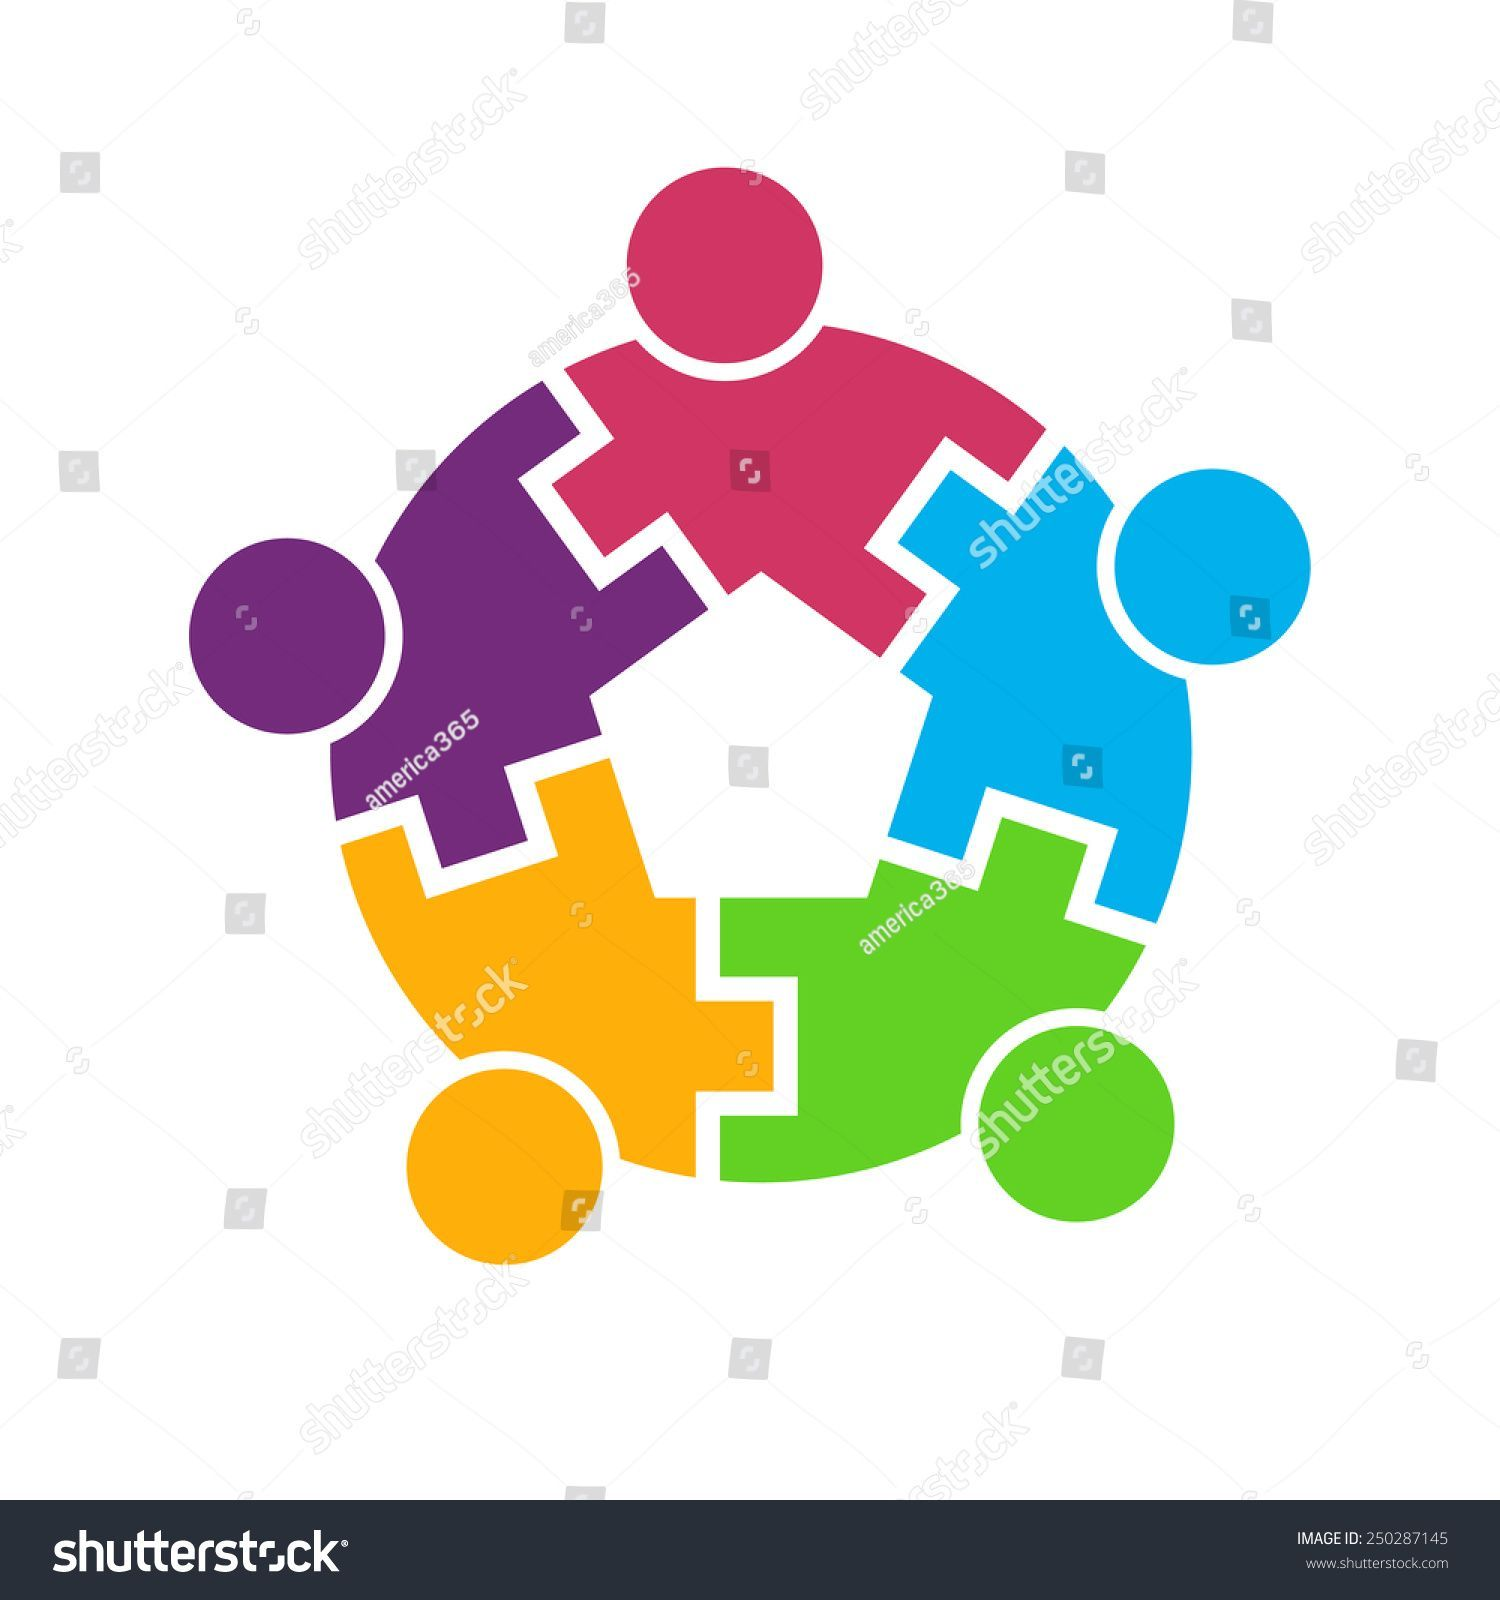 Teamwork 5 people logo circle interlaced Concept group of connected